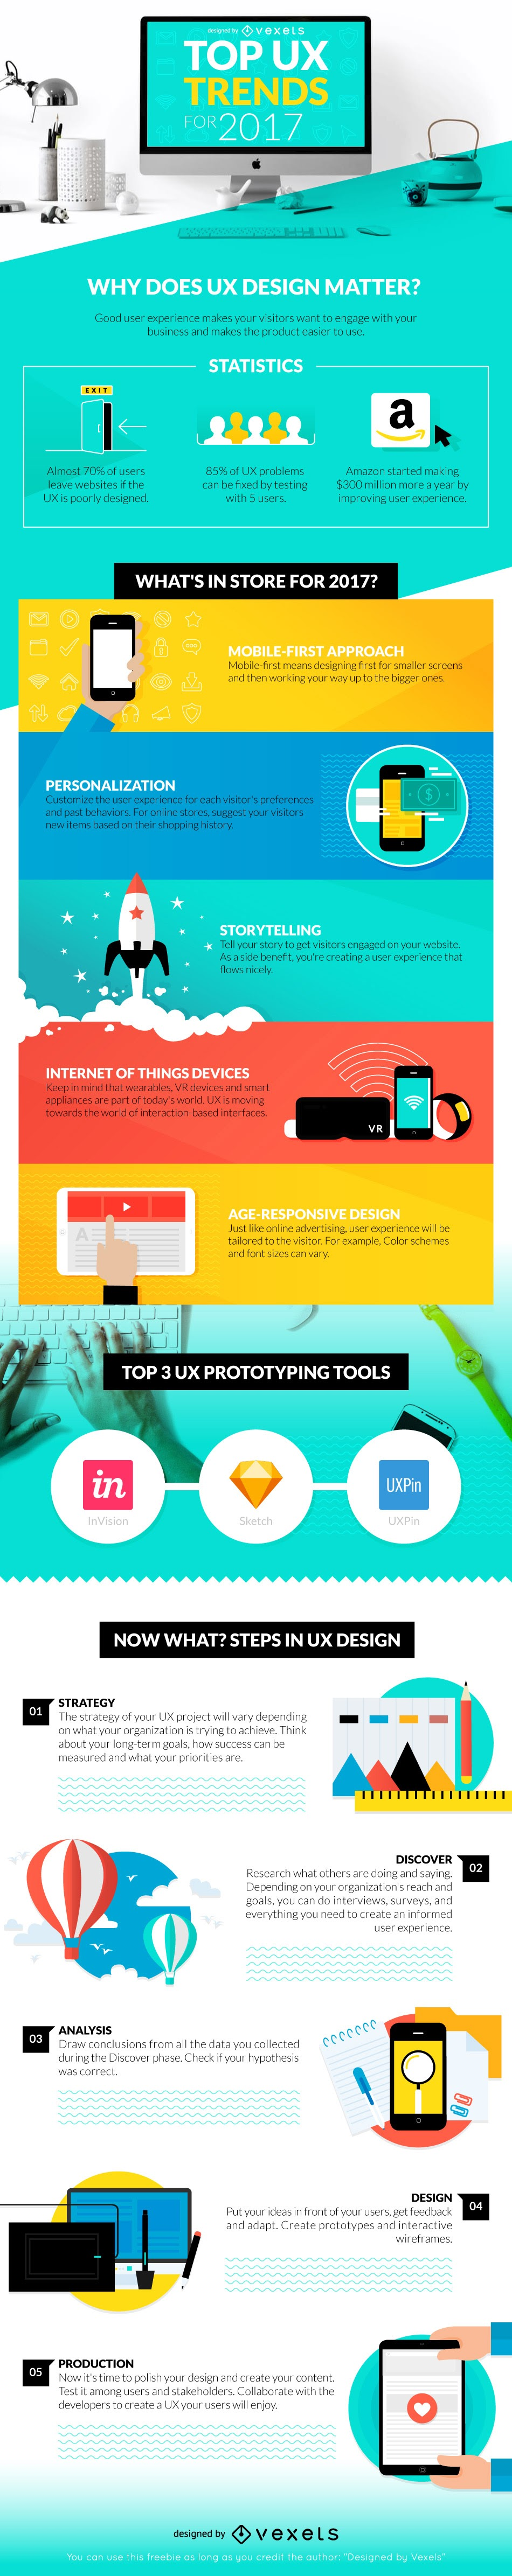 top-ux-trends-2017